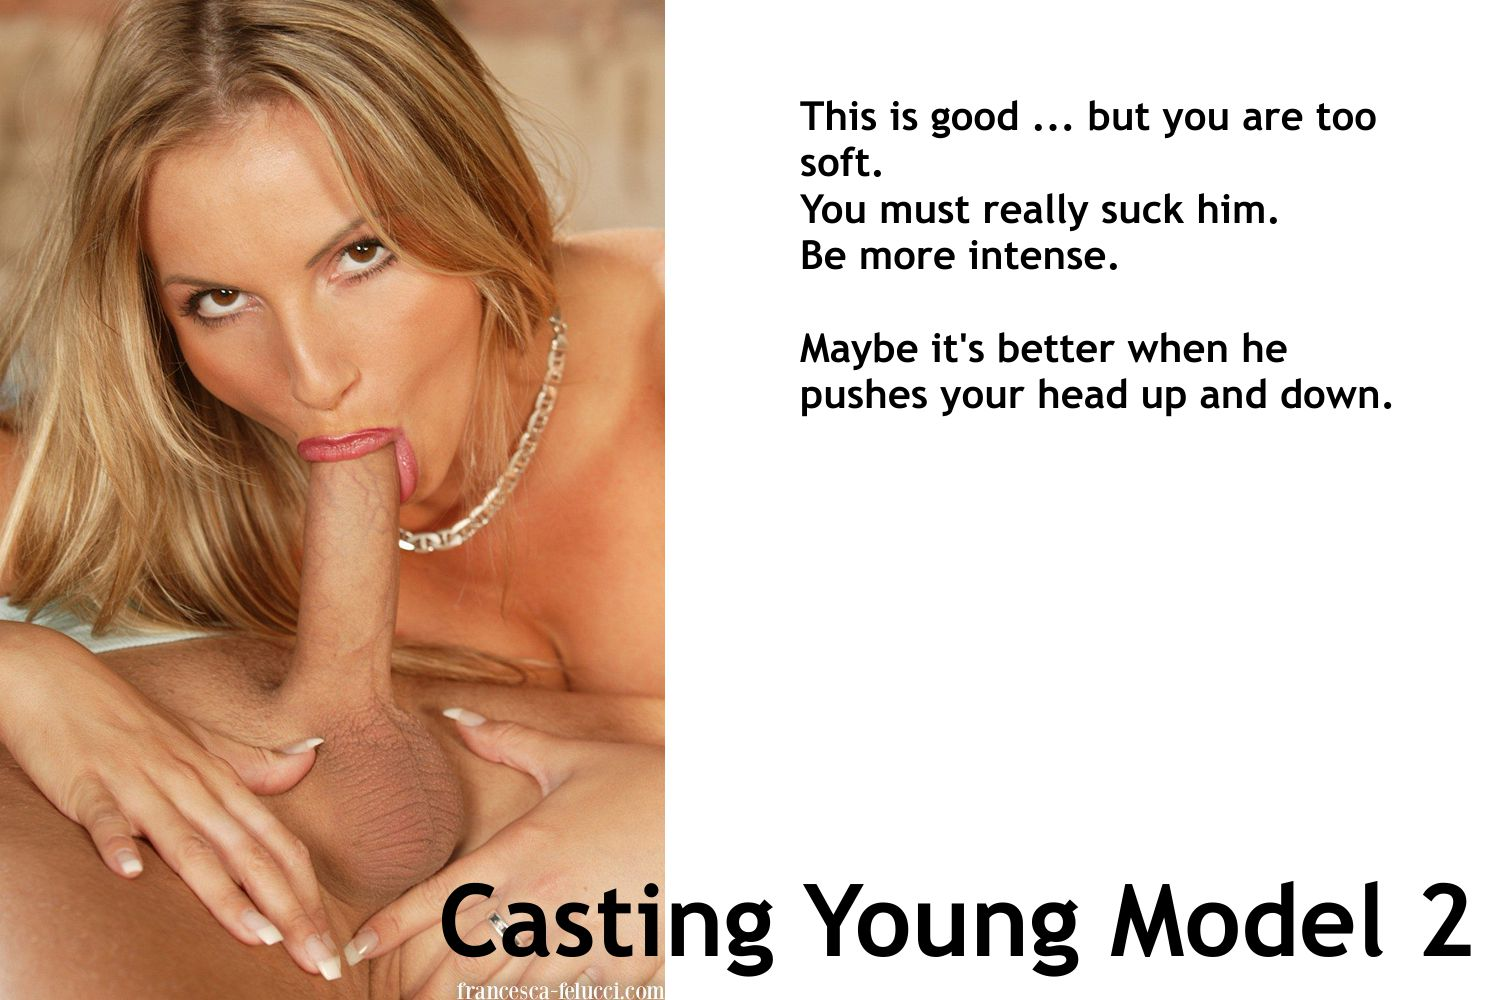 casting_young_model_2_009